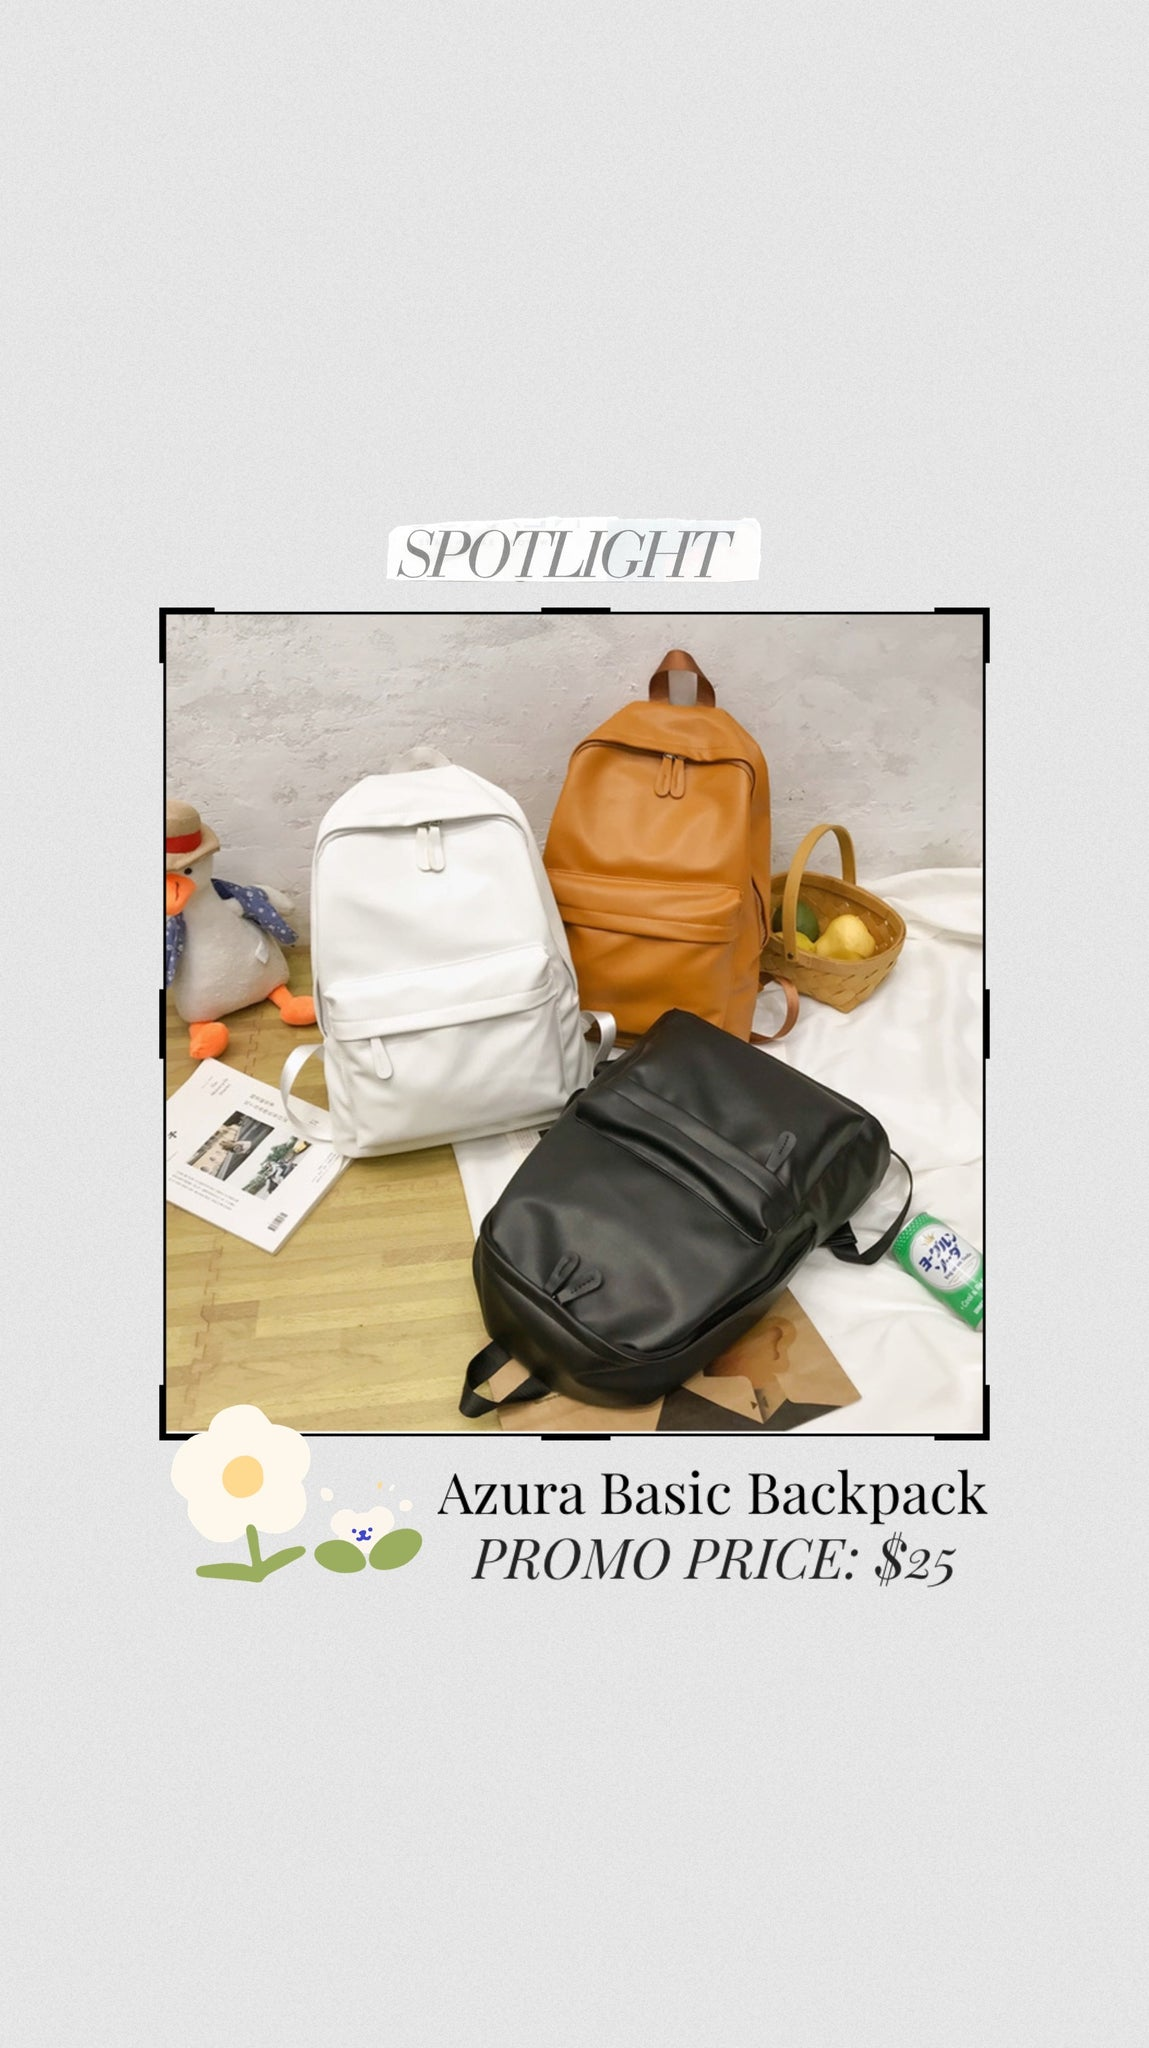 Azura Basic Backpack